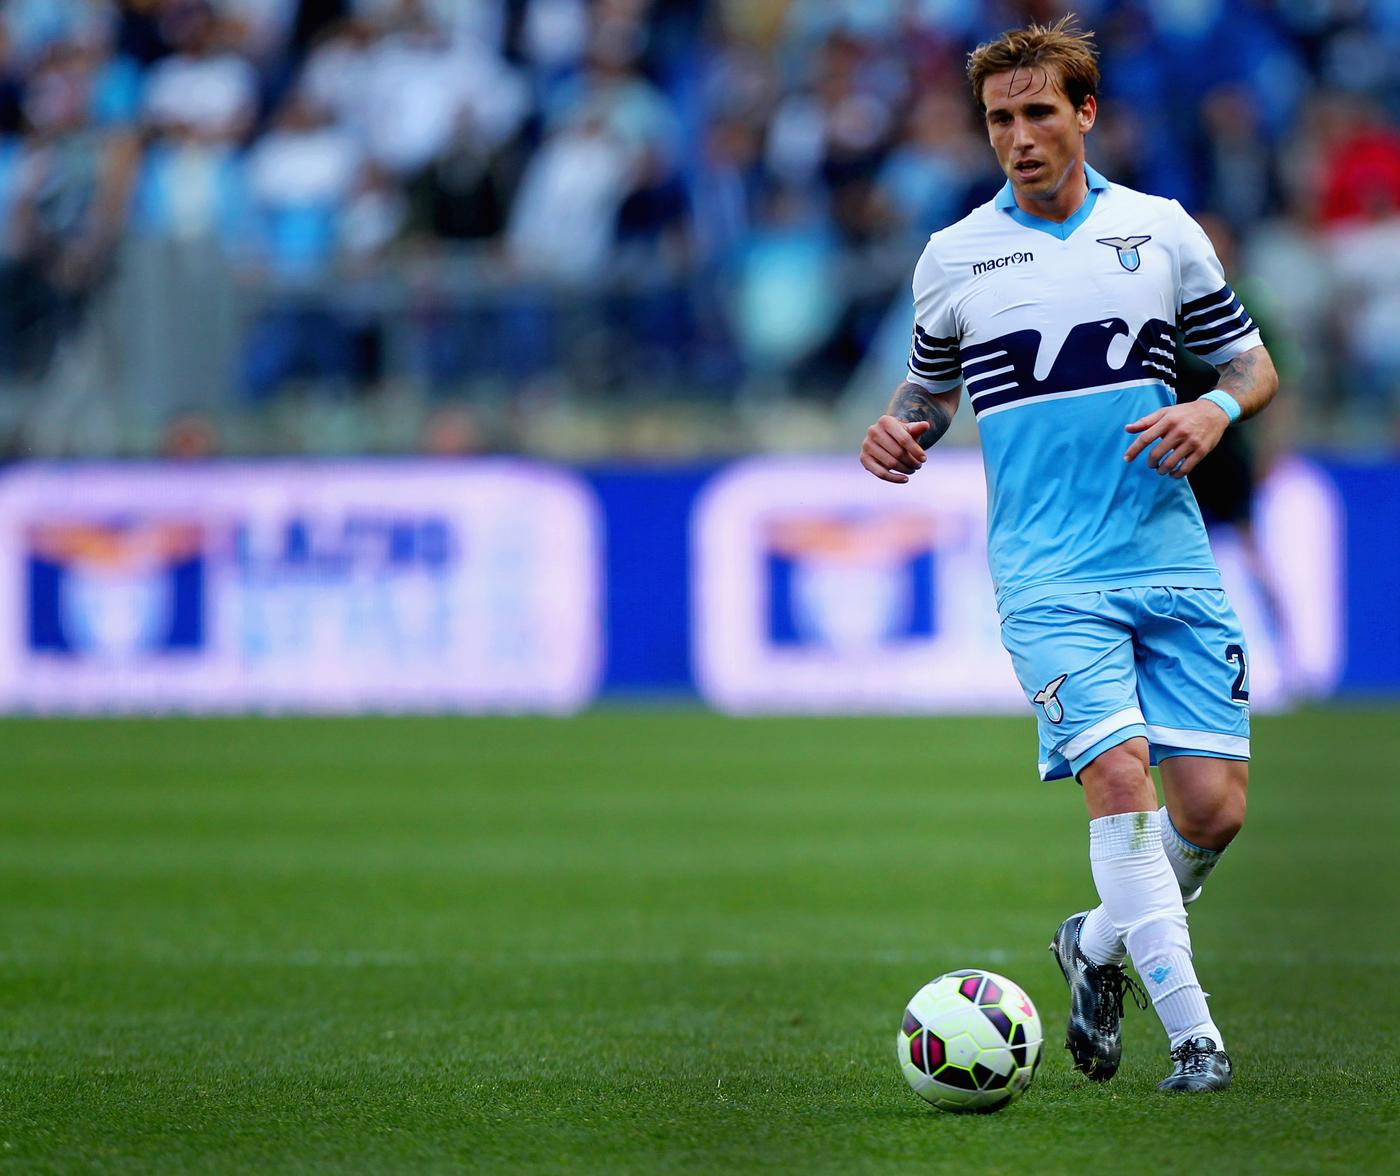 Lucas Biglia 'could complete Manchester United transfer within hours after agreeing personal terms'